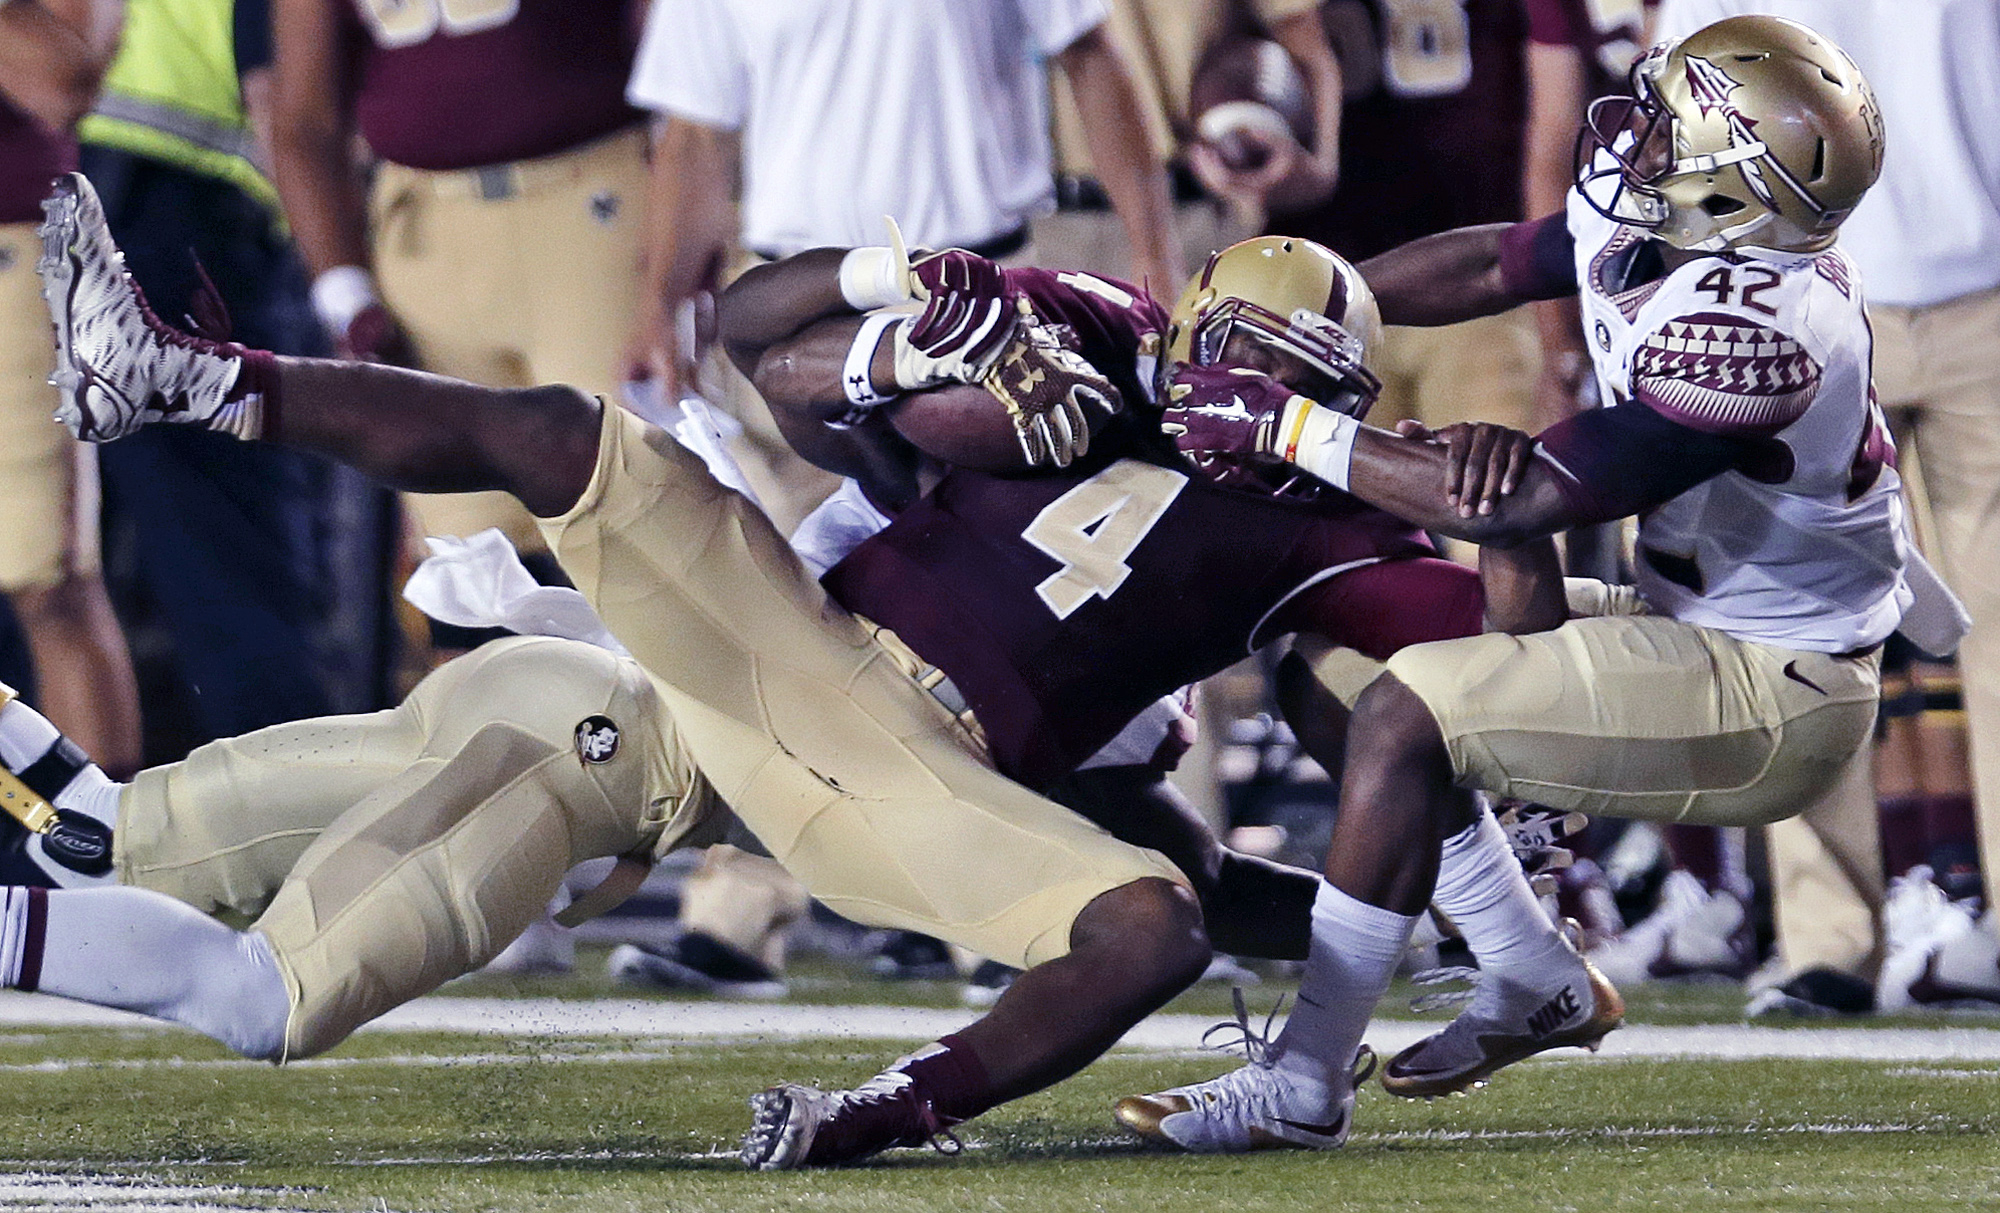 Boston College quarterback Darius Wade (4) is taken down by Florida State defensive back Lamarcus Brutus (42) during the first half of an NCAA college football game in Boston, Friday, Sept. 18, 2015. (AP Photo/Charles Krupa)